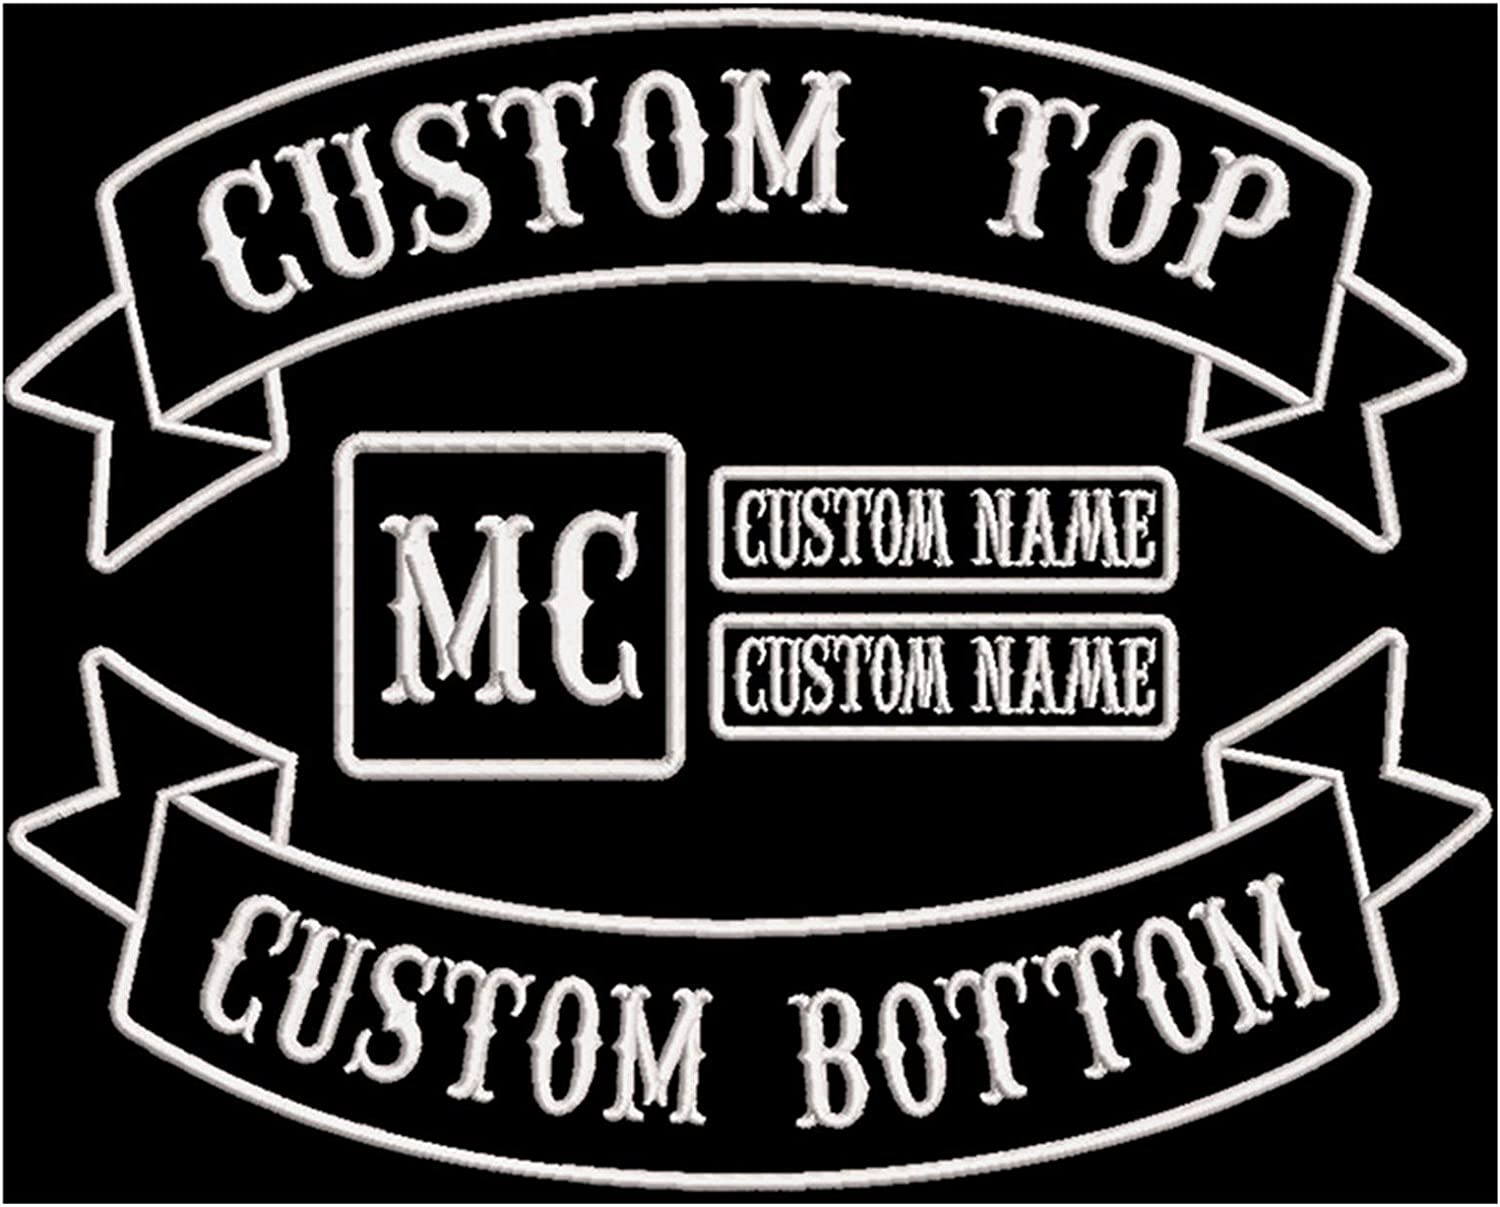 Custom embroidery patches for motorcycle vest forex trading on windows mobile